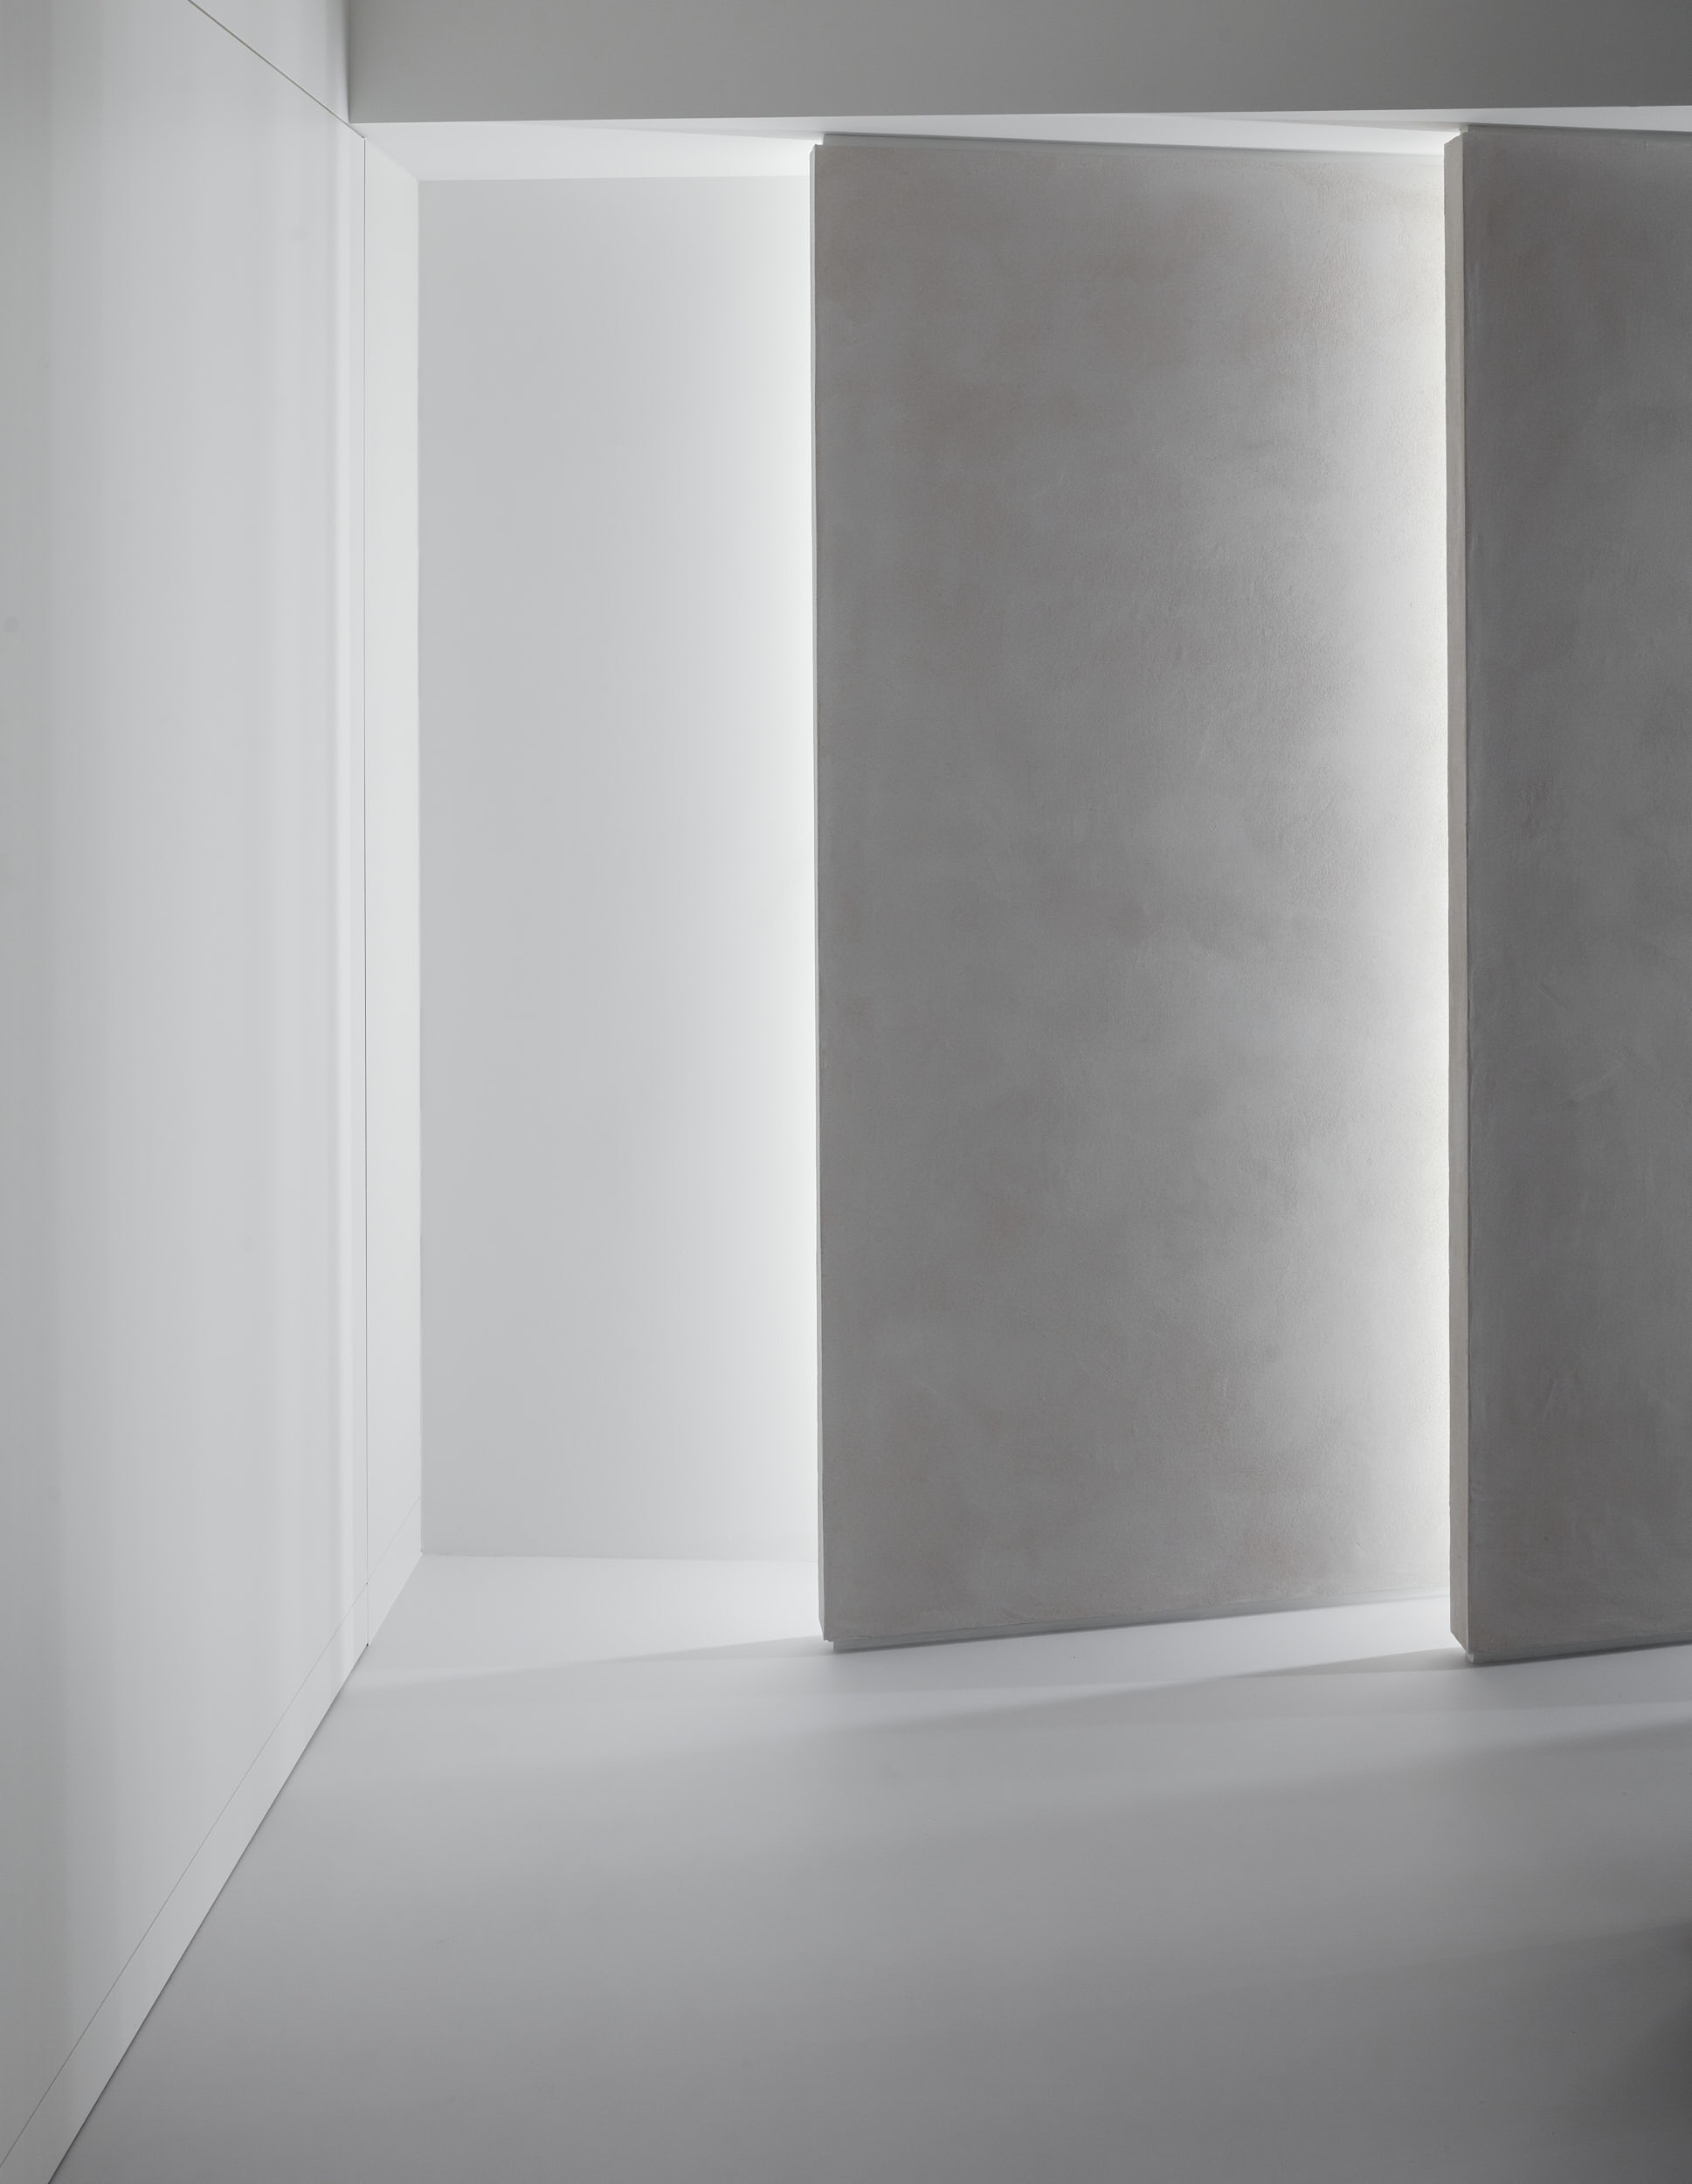 Gallery features beautifu staggered panels with integrated lighting.